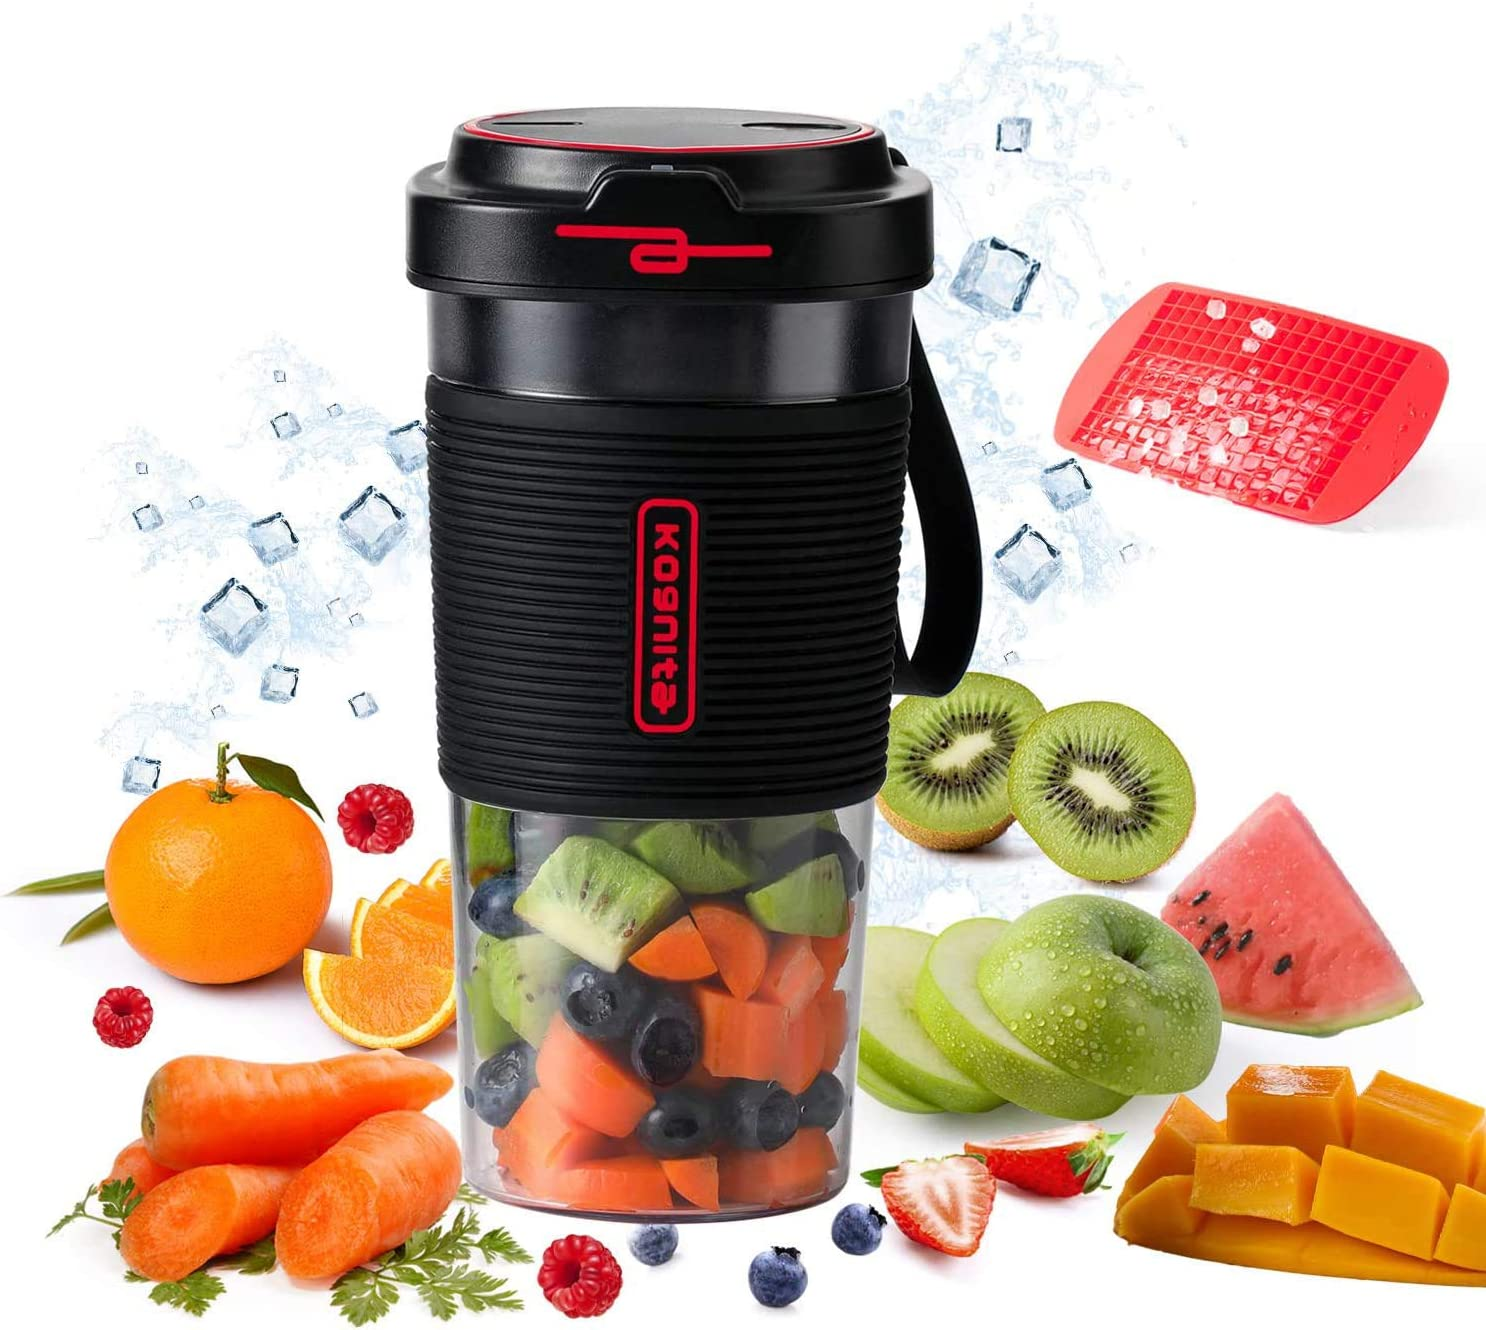 Personal Blender for Shakes and Smoothies - 17oz Cordless Portable Blender,60W Small Single Serve Blender,Travel Mini Size Blender Juicer with USB Rechargeable